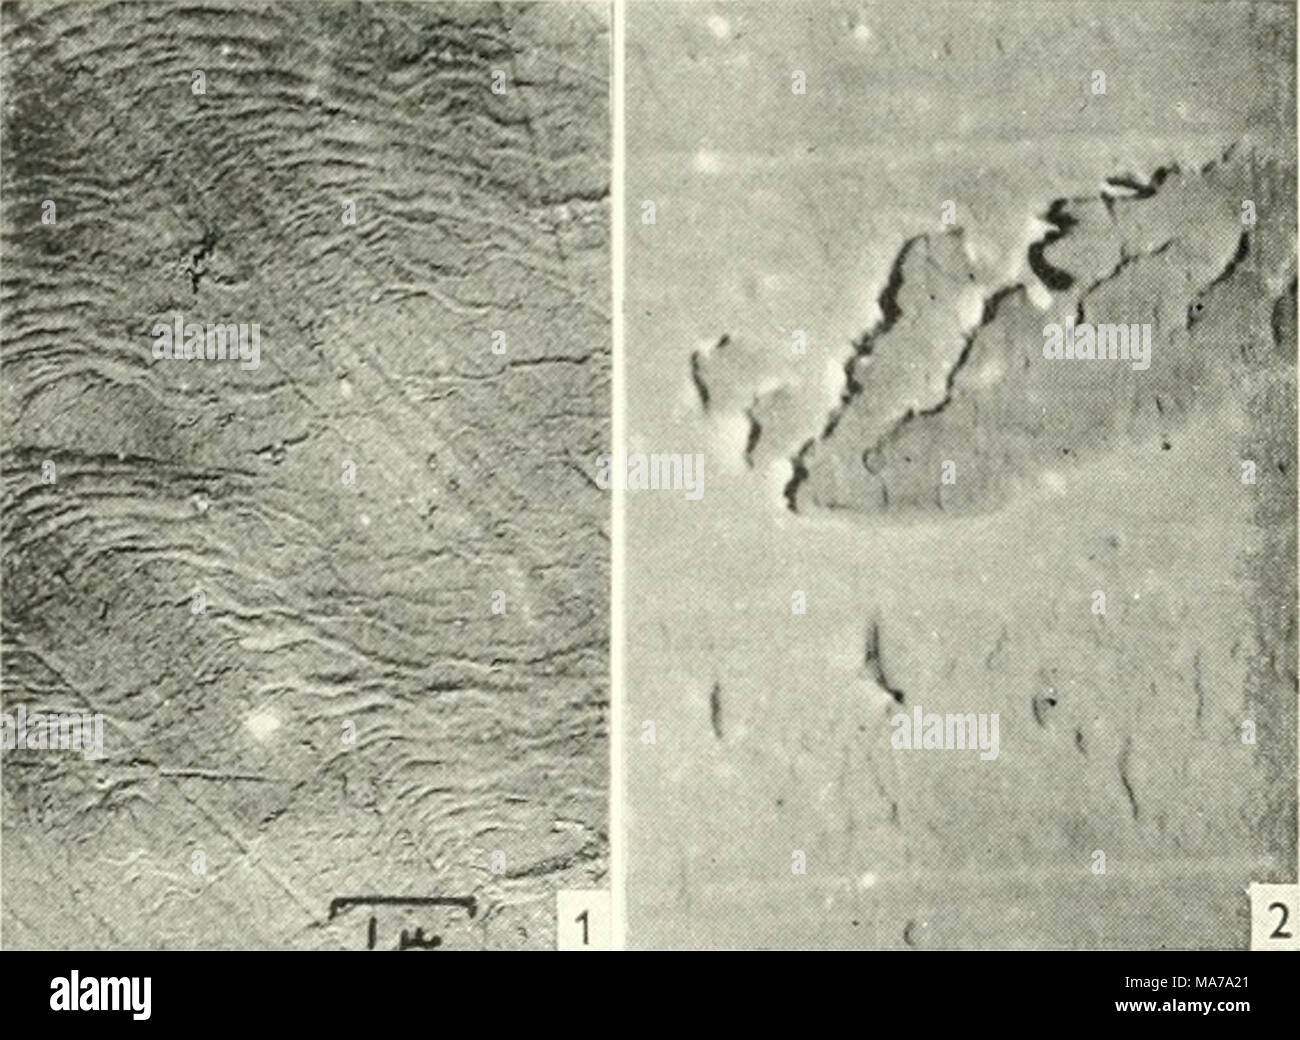 . Electron microscopy; proceedings of the Stockholm Conference, September, 1956 . Fig. I. Initiation of Wear Damage on Soft Steel. An area of running track near the start of a test run. Tiie material of the cylinder is E.N.8 steel of hardness aproximately 200 V.P.N. Plastic deformation of this fairly ductile material is evident, also small areas of surface damage produced by the displacement of material. Magnification 7500. Fig. 2. Initiation of Wear Damage on Hard Steel. Initial damage to the surface of a case hardened E. N.36 steel cylinder of hardness over 800 V.P.N. There is little plastic - Stock Image